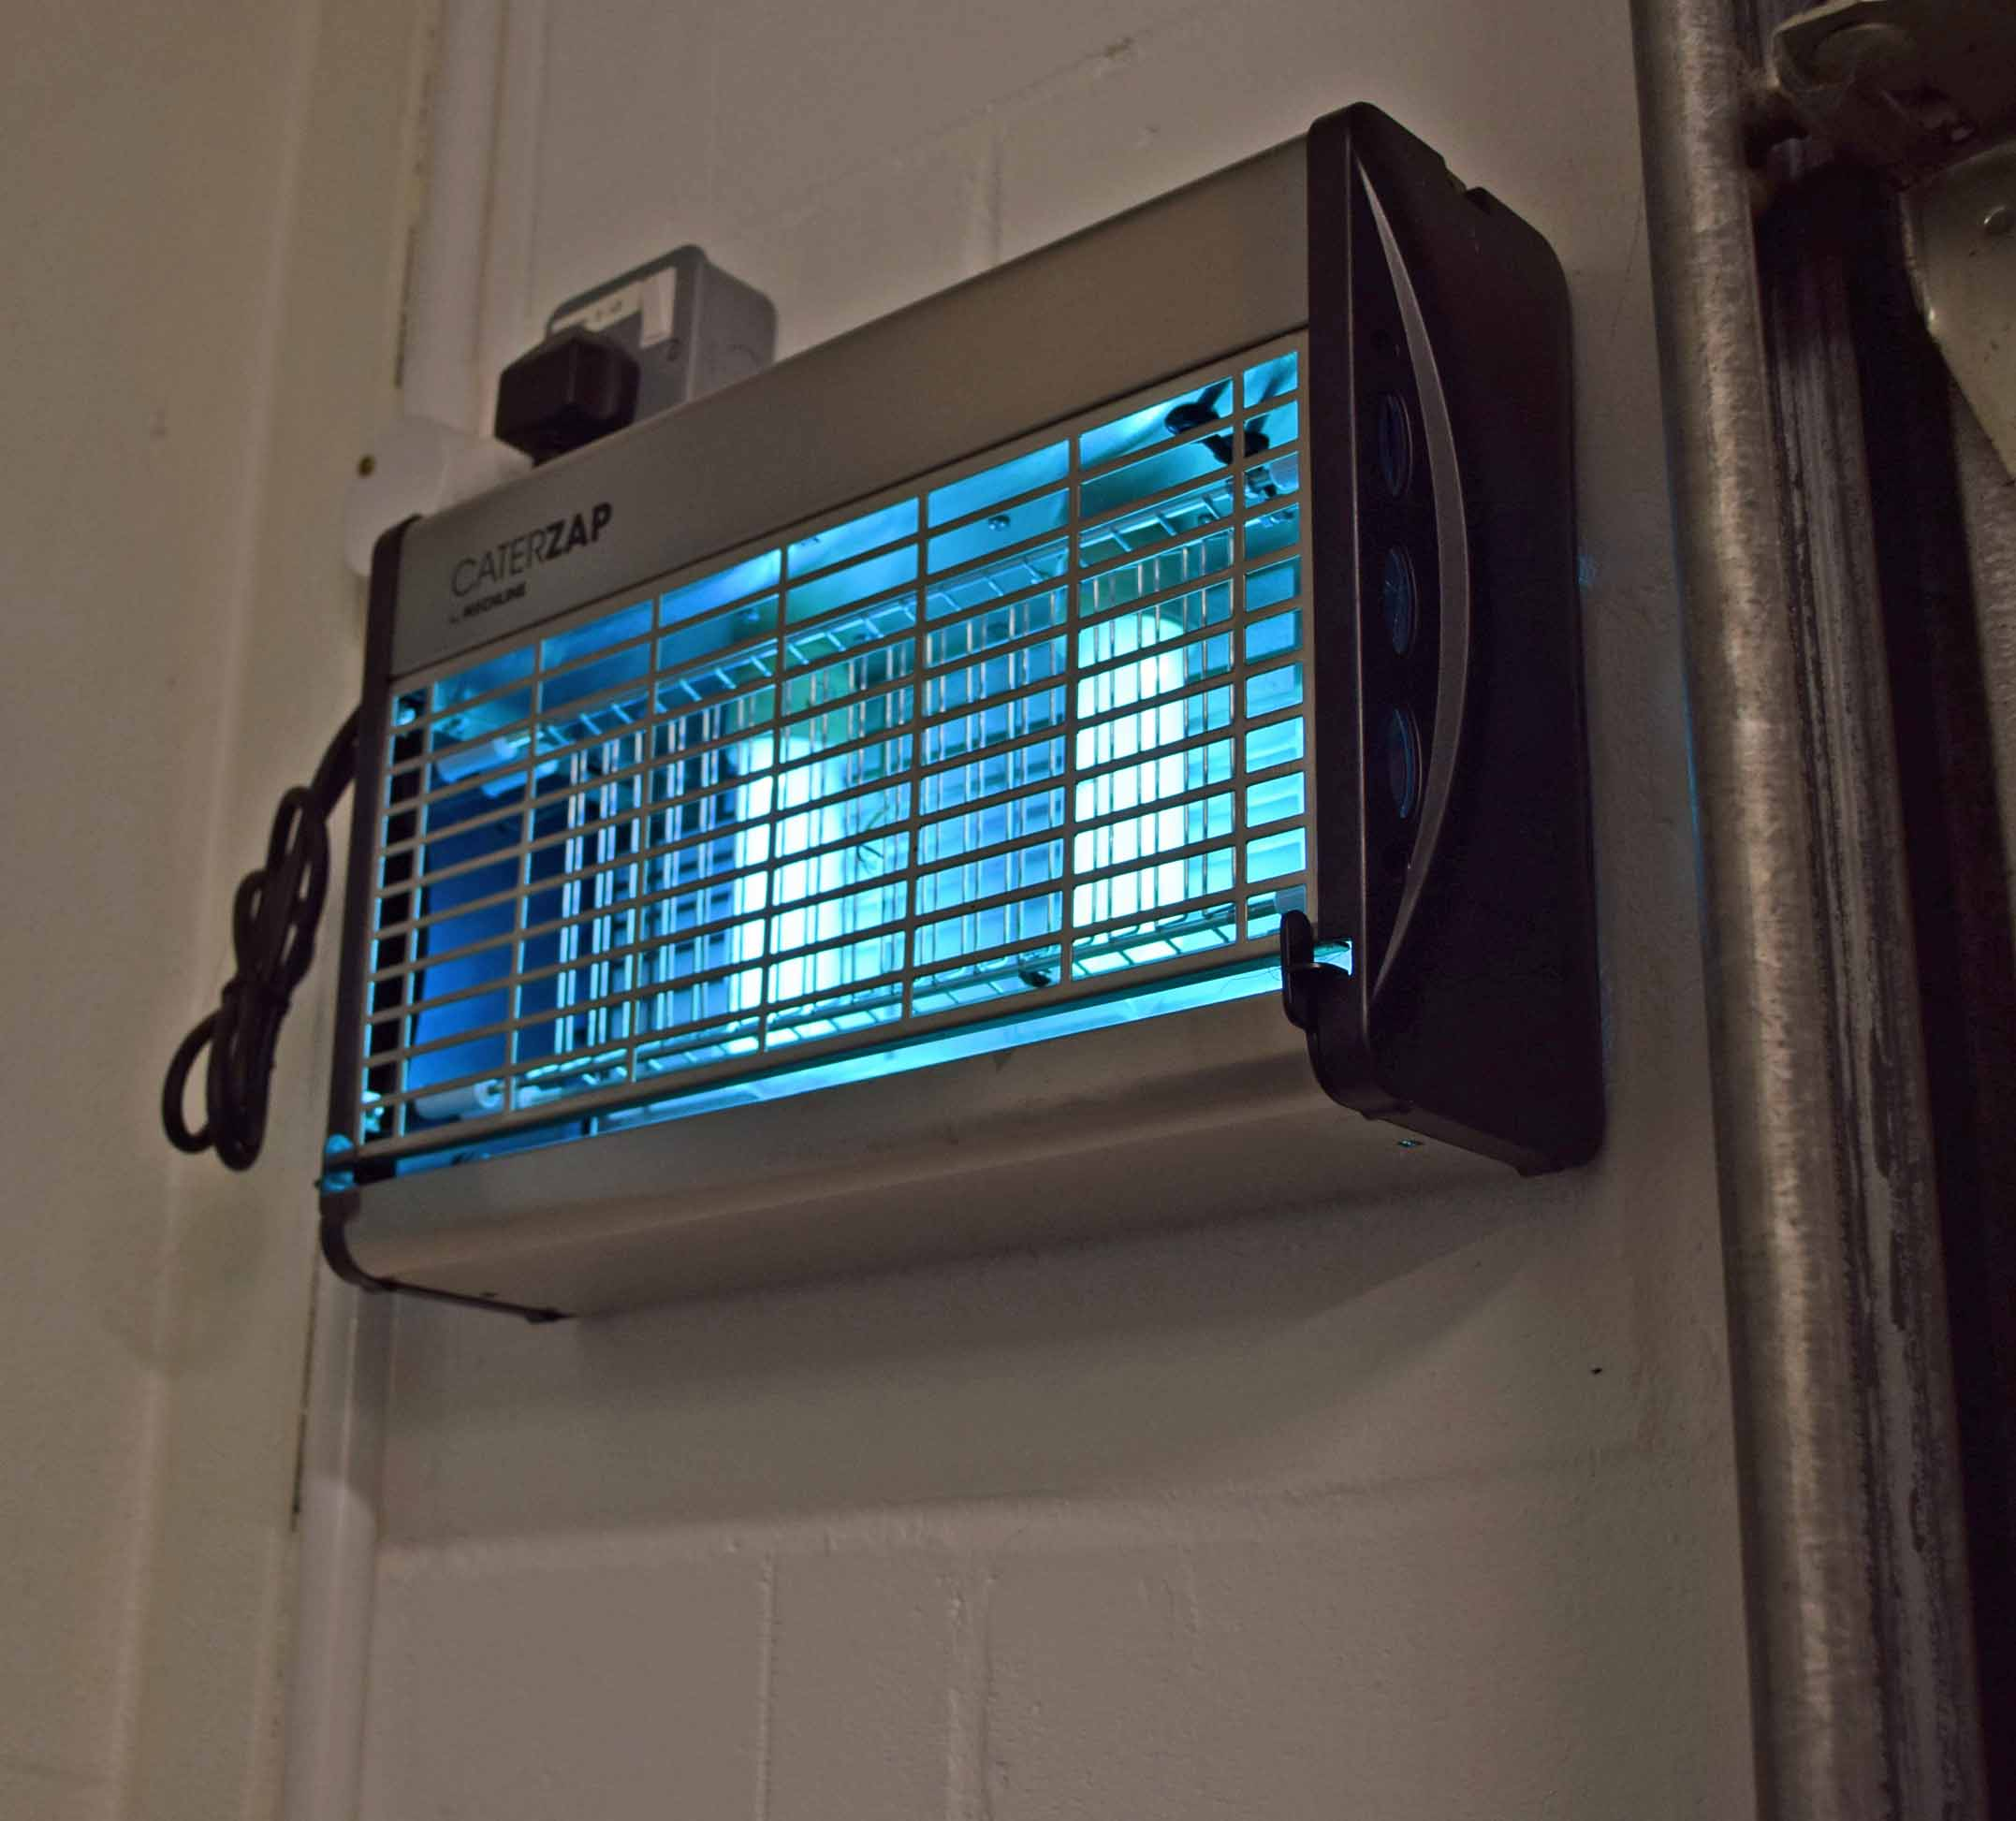 Two MECHLINE CaterZap Wall mounted Plug-In Electric Insectocutors - Image 2 of 2